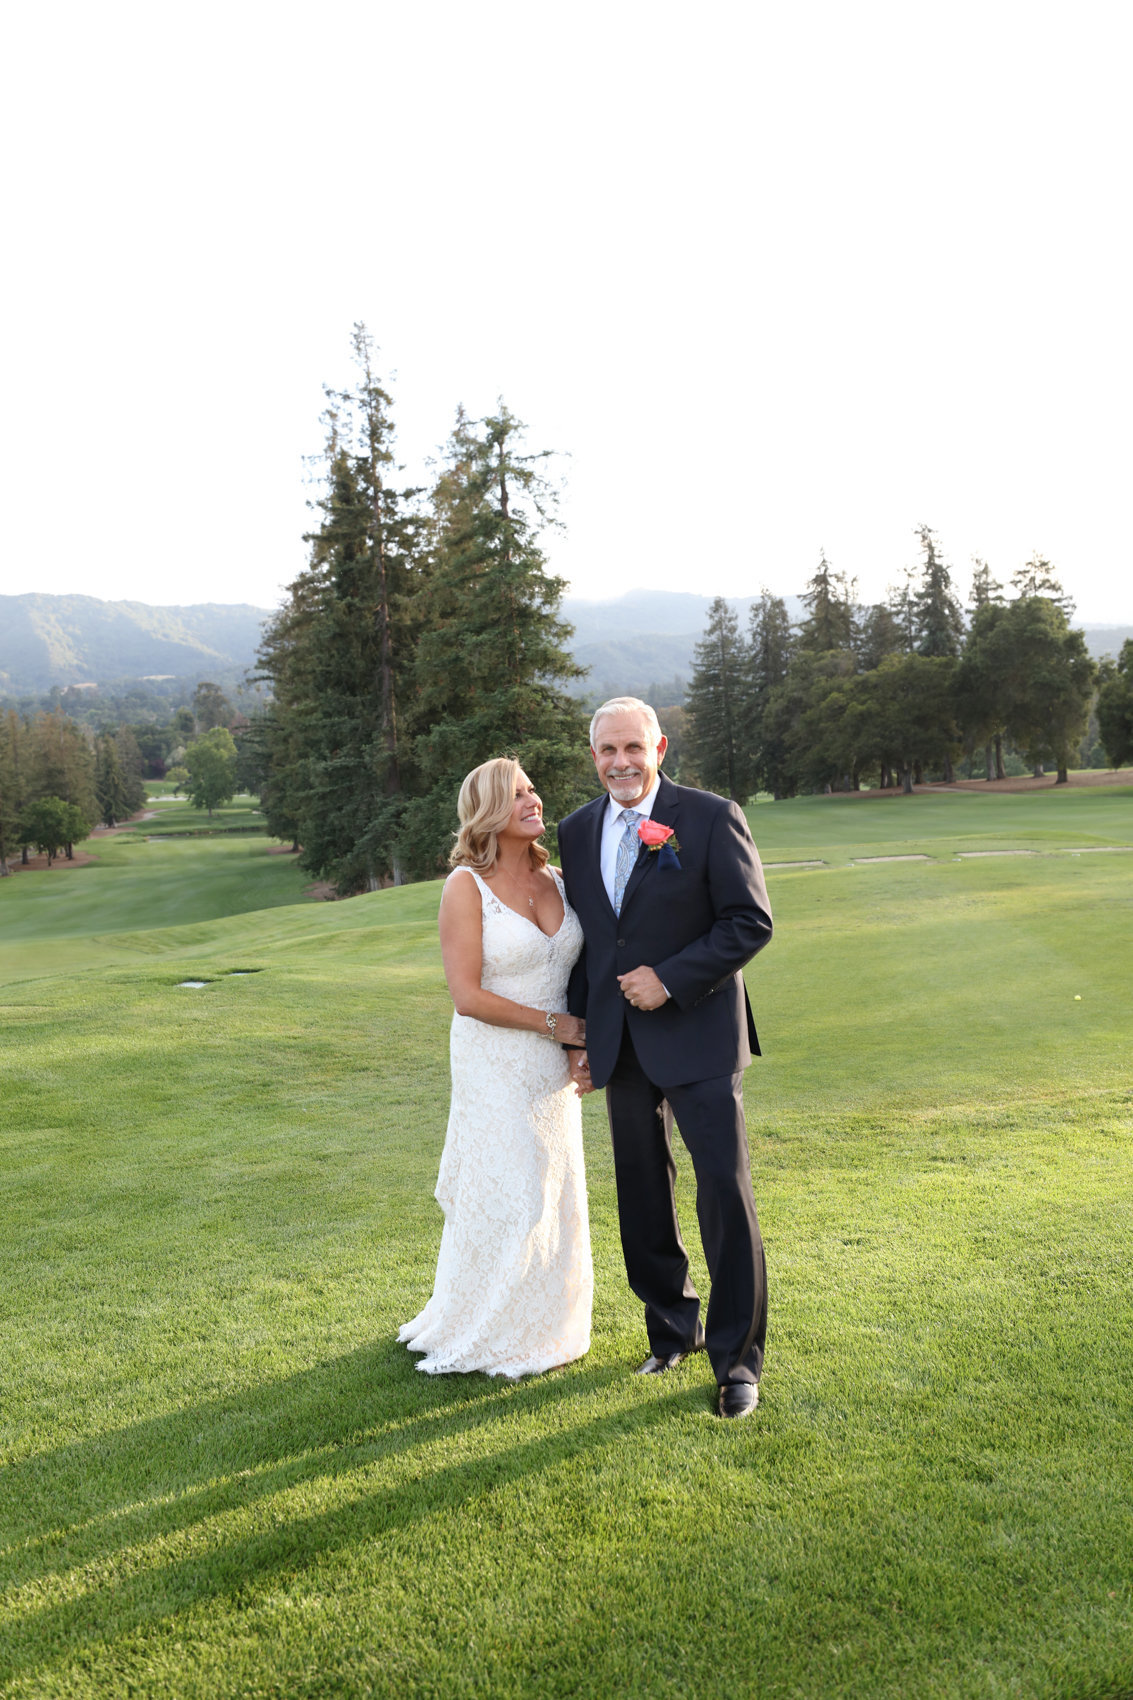 Los altos wedding portraits, bride and groom, outdoor setting wedding